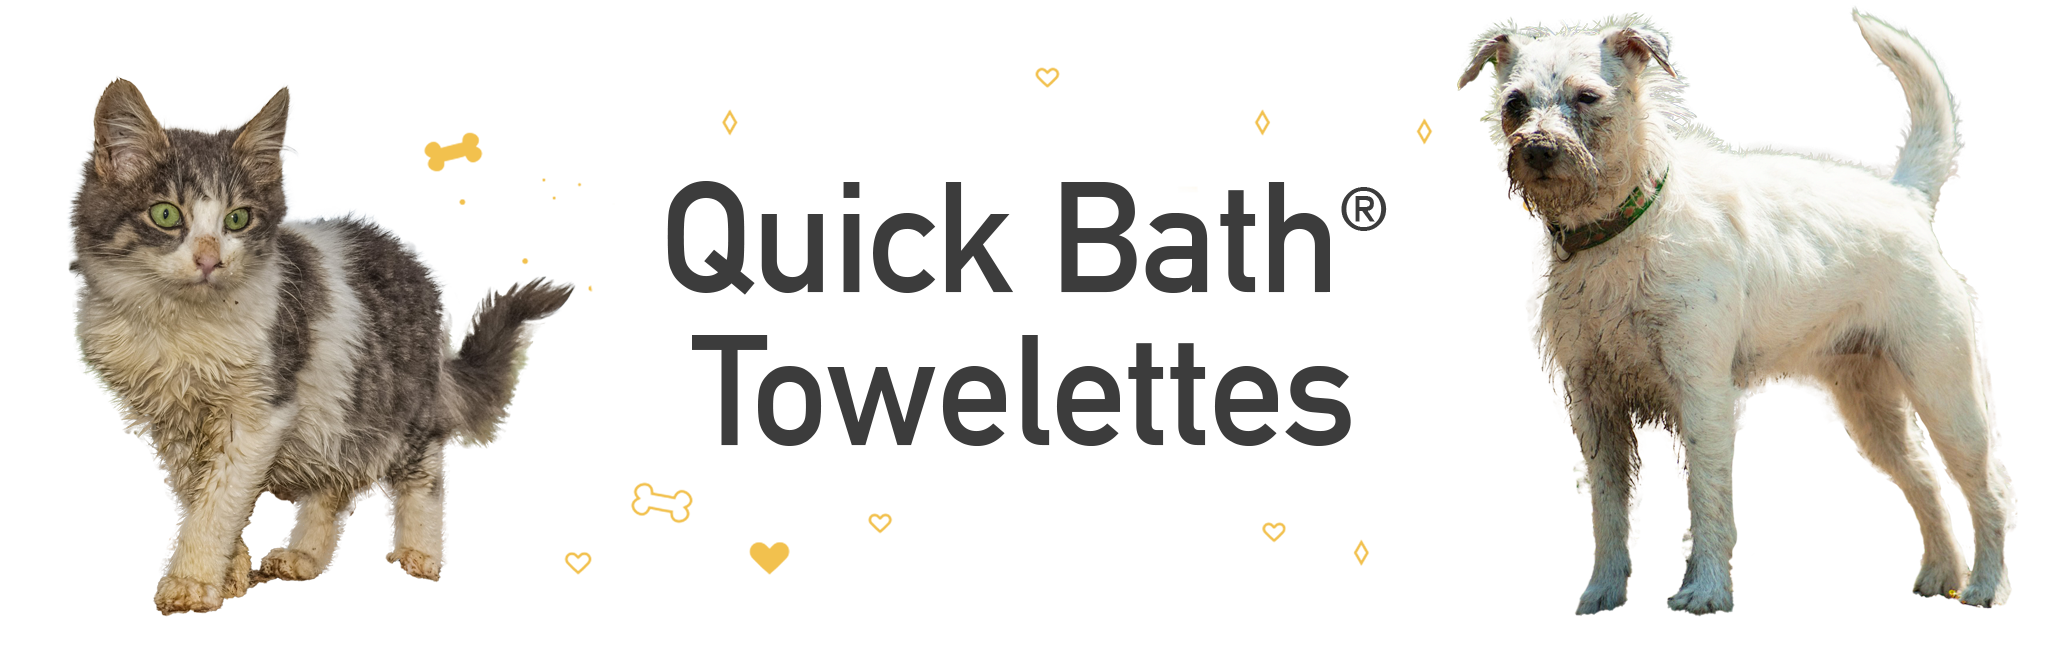 IVS Quick Bath Towelettes